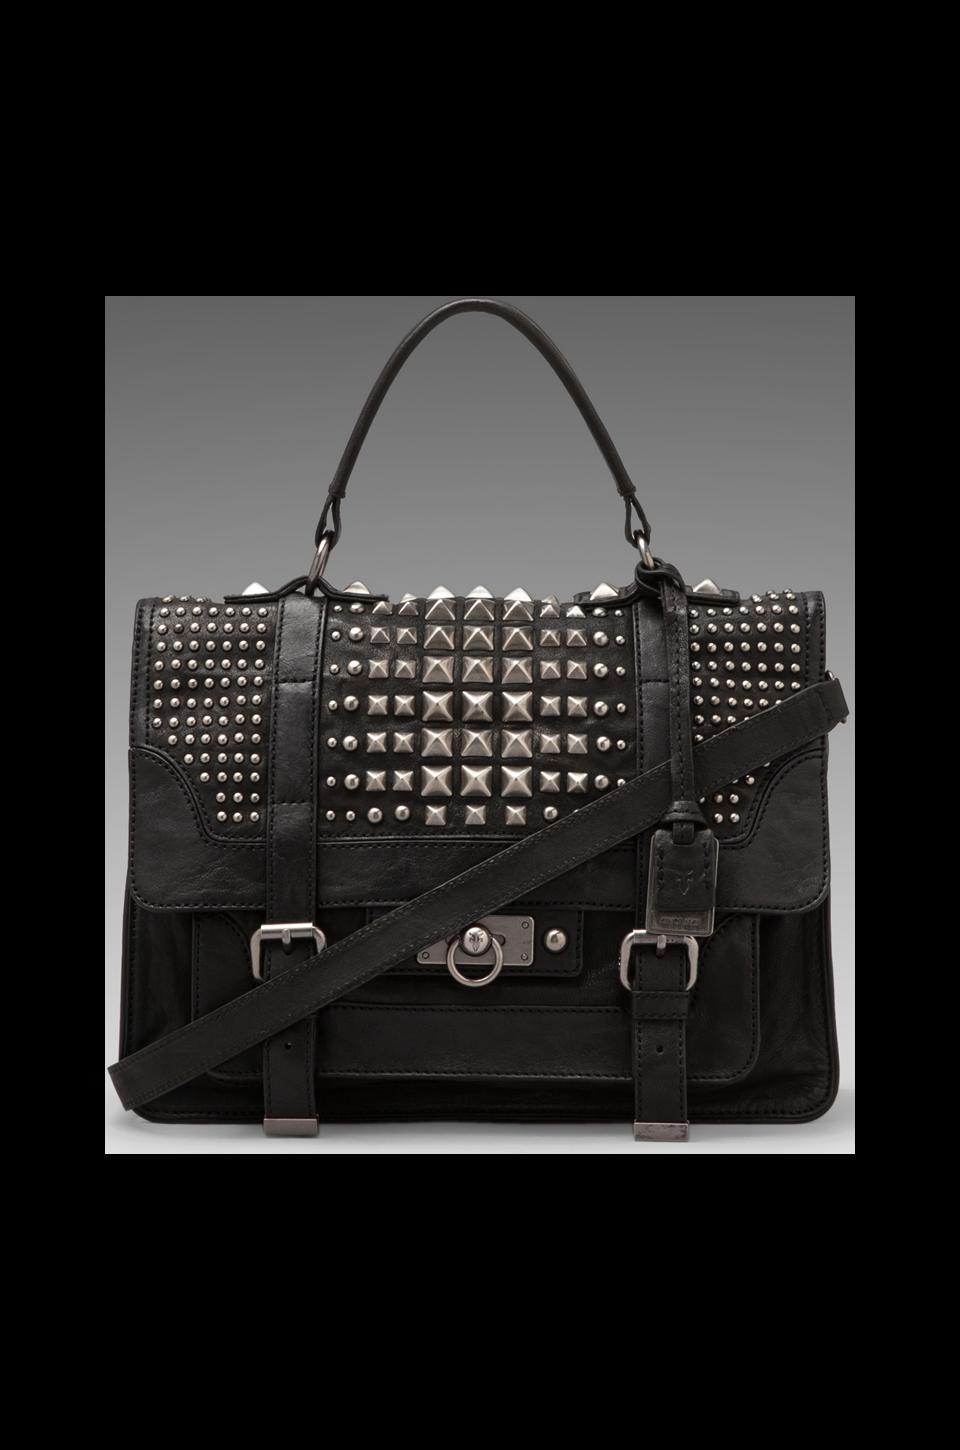 Frye Cameron Studded Satchel in Black